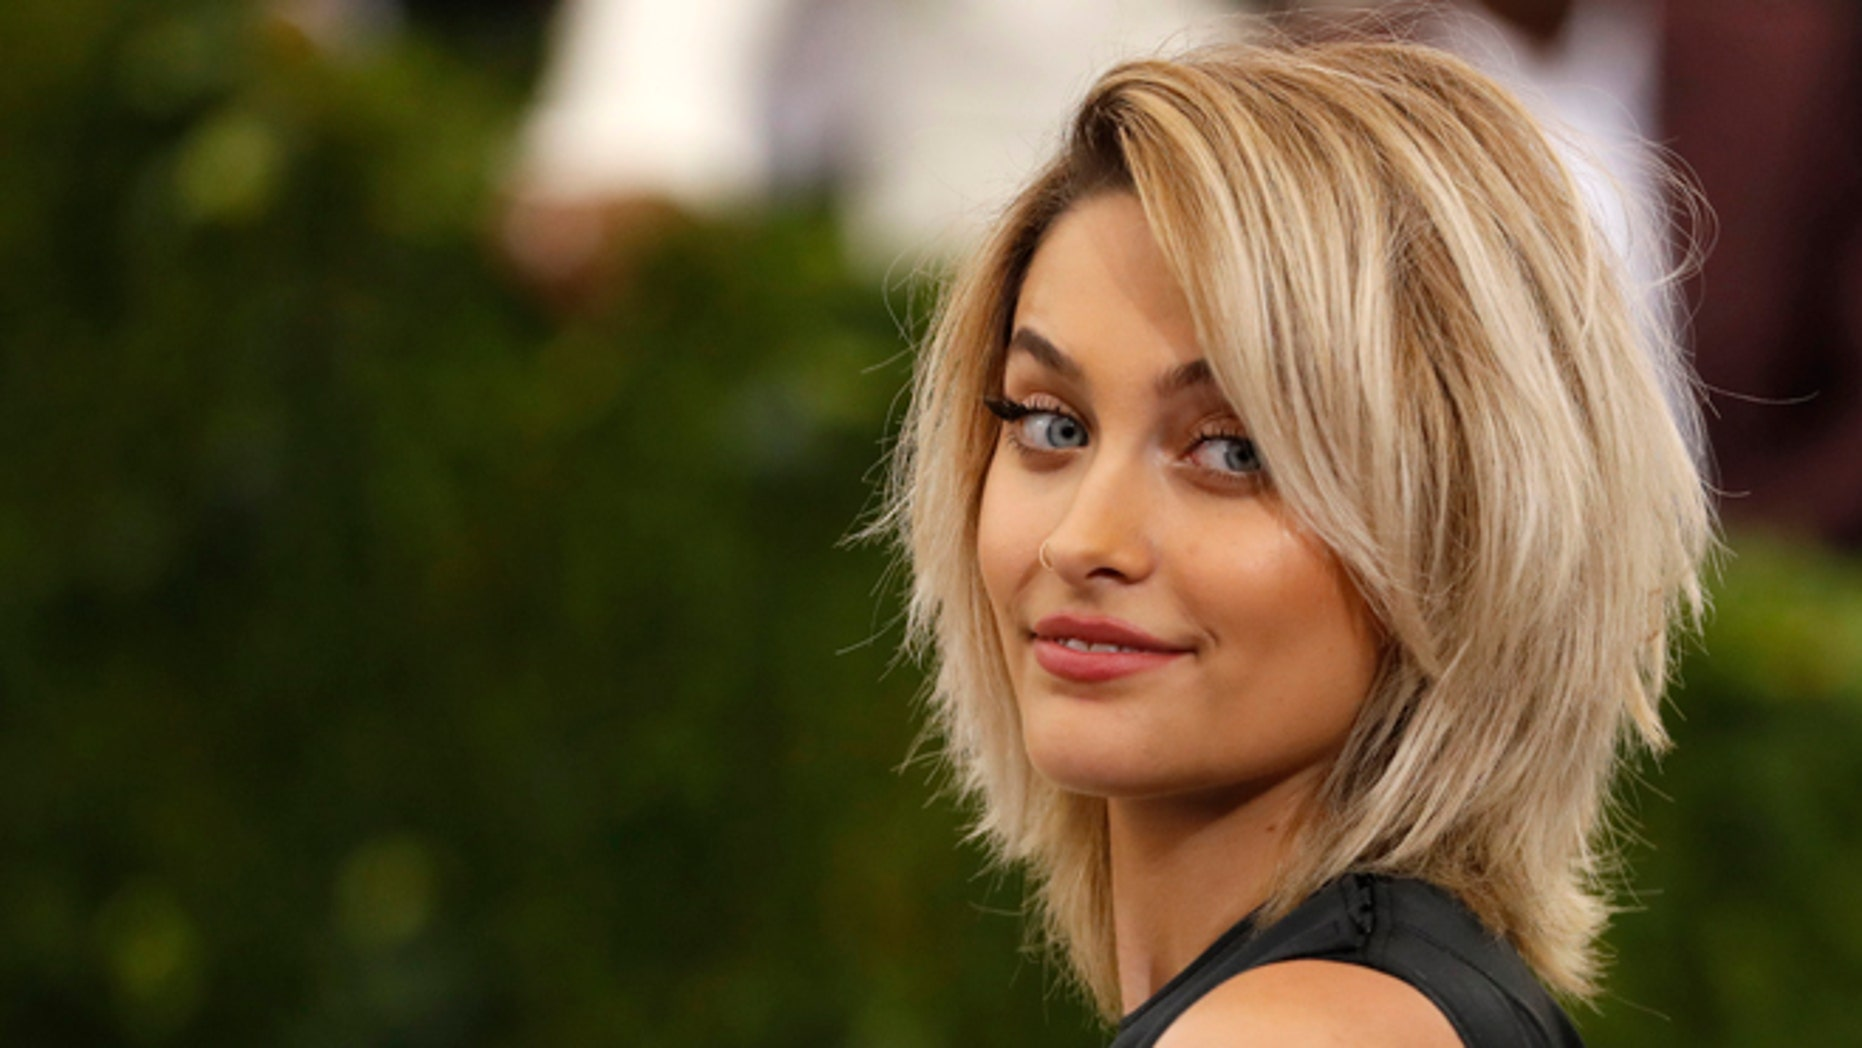 Paris Jackson says she likes to garden in the nude.